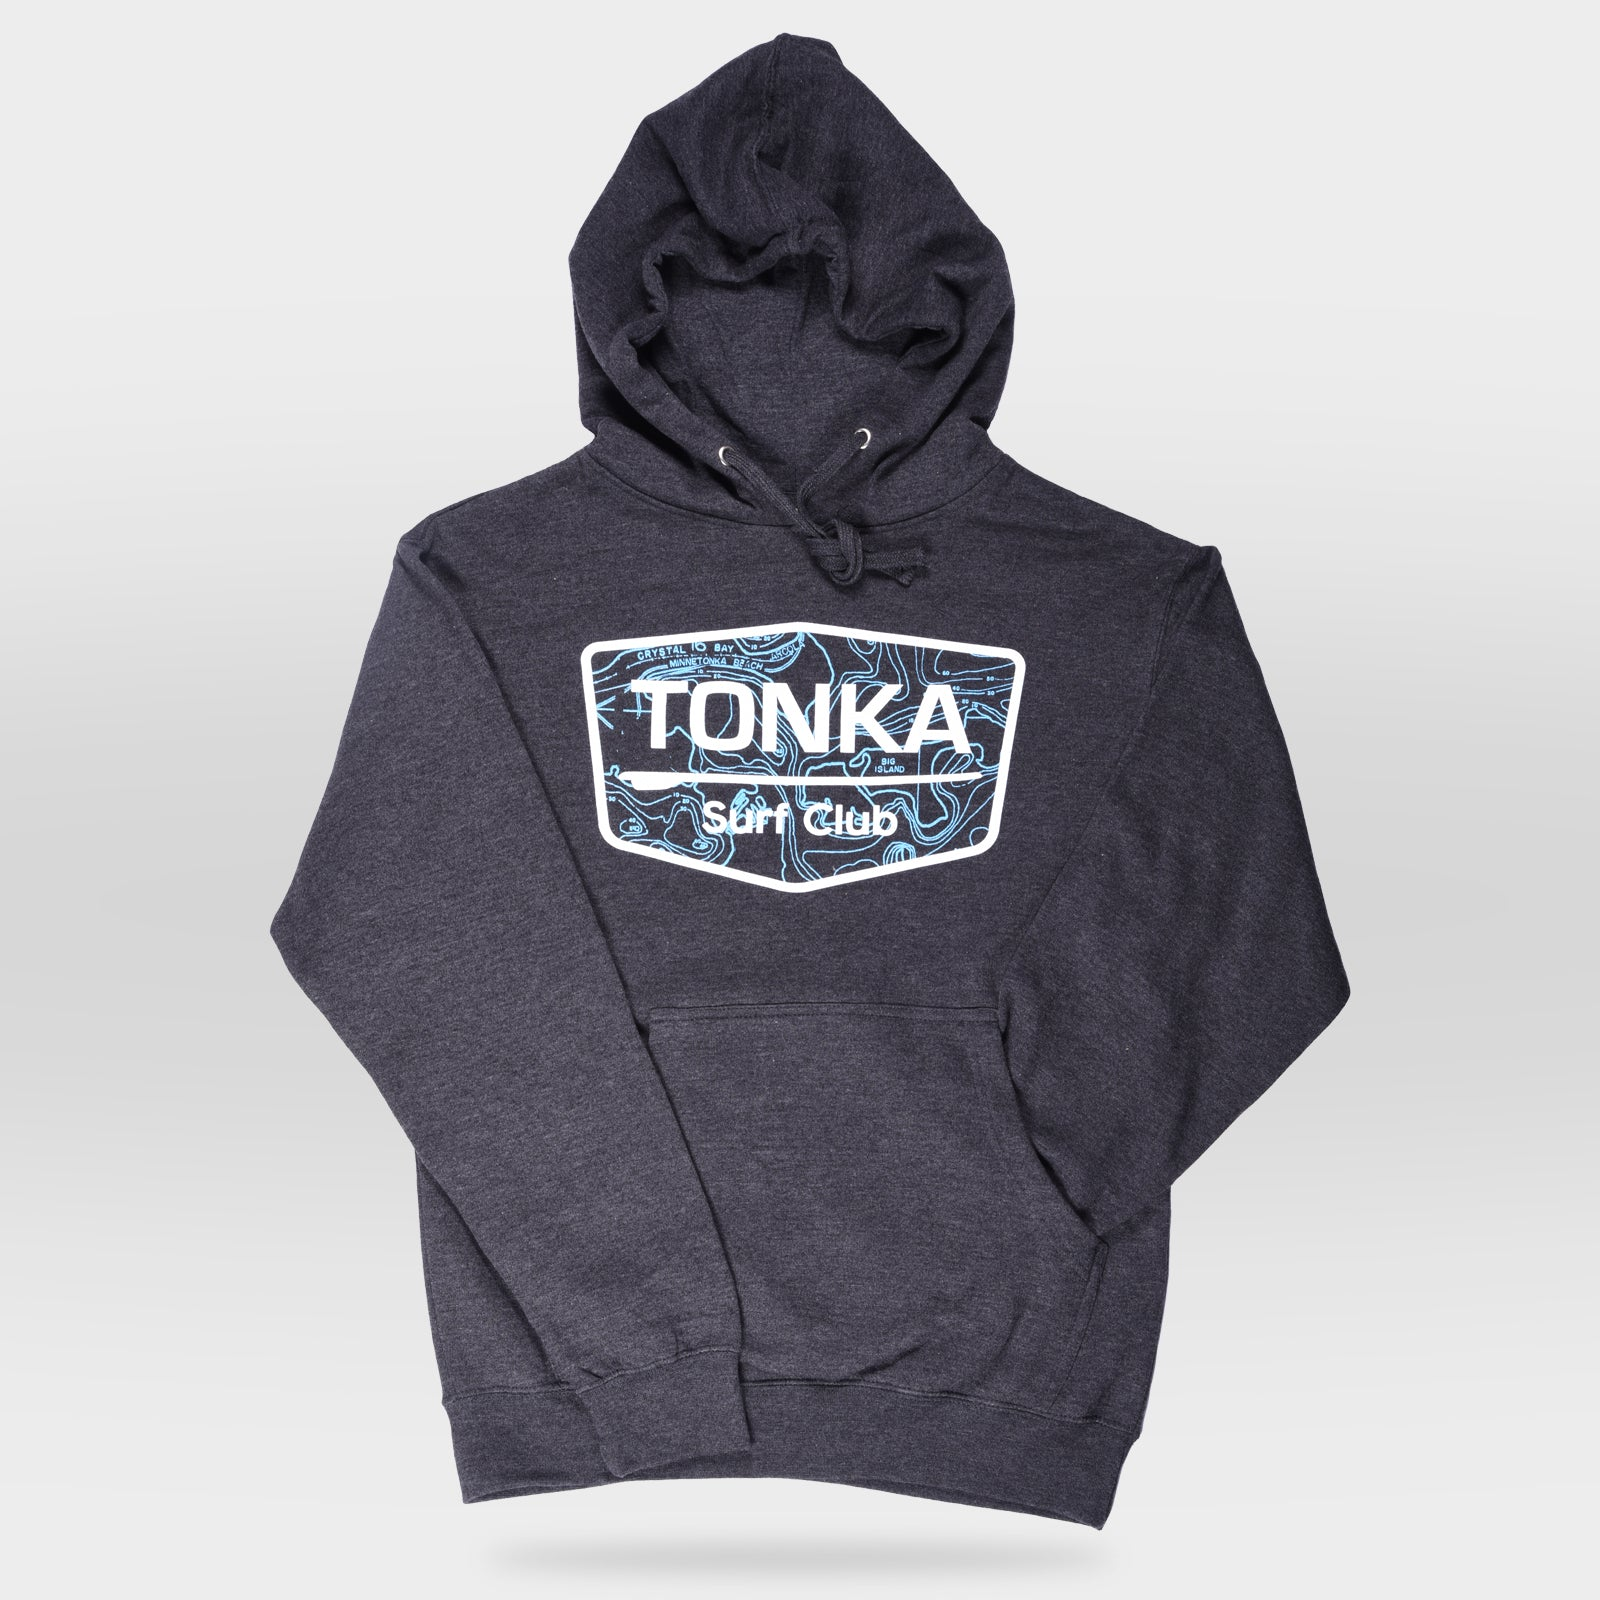 HOODIES :: TONKA Surf Club Sweatshirt